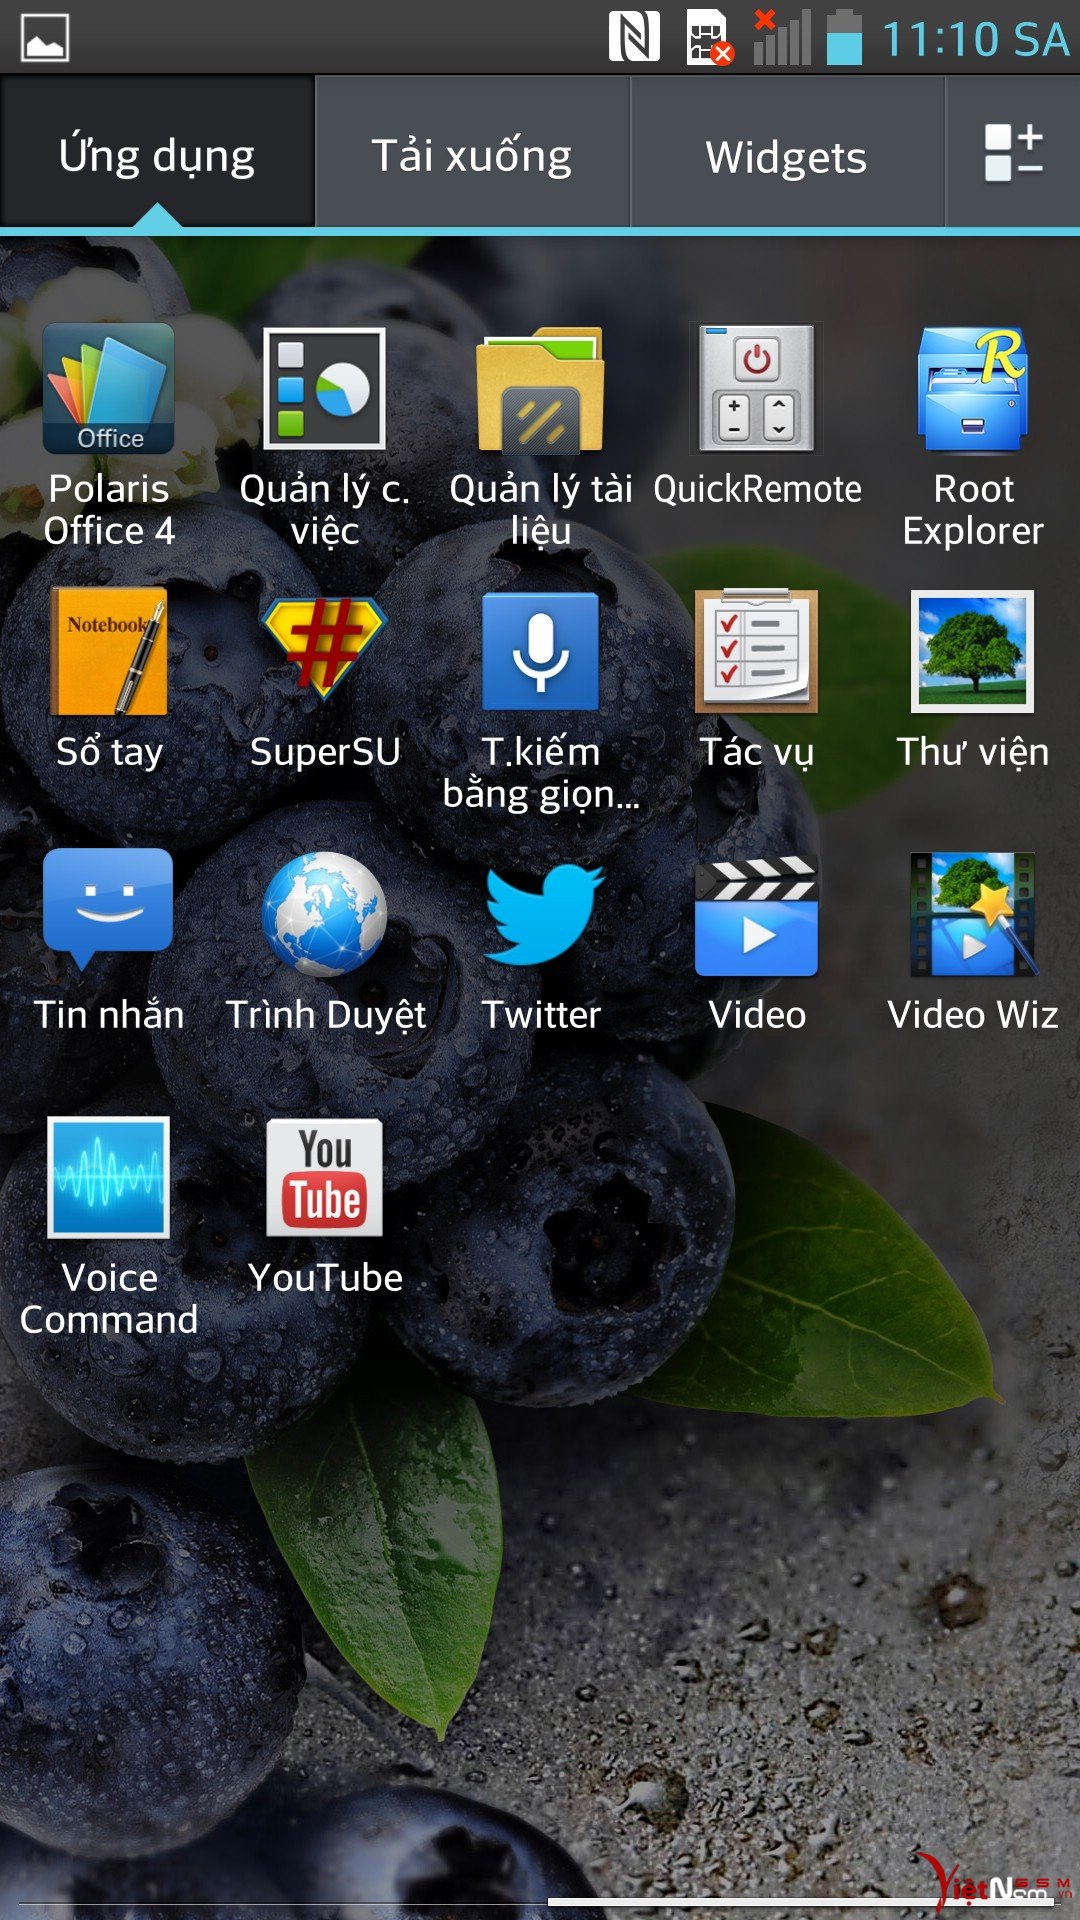 Screenshot_2014-08-12-11-10-03.jpg